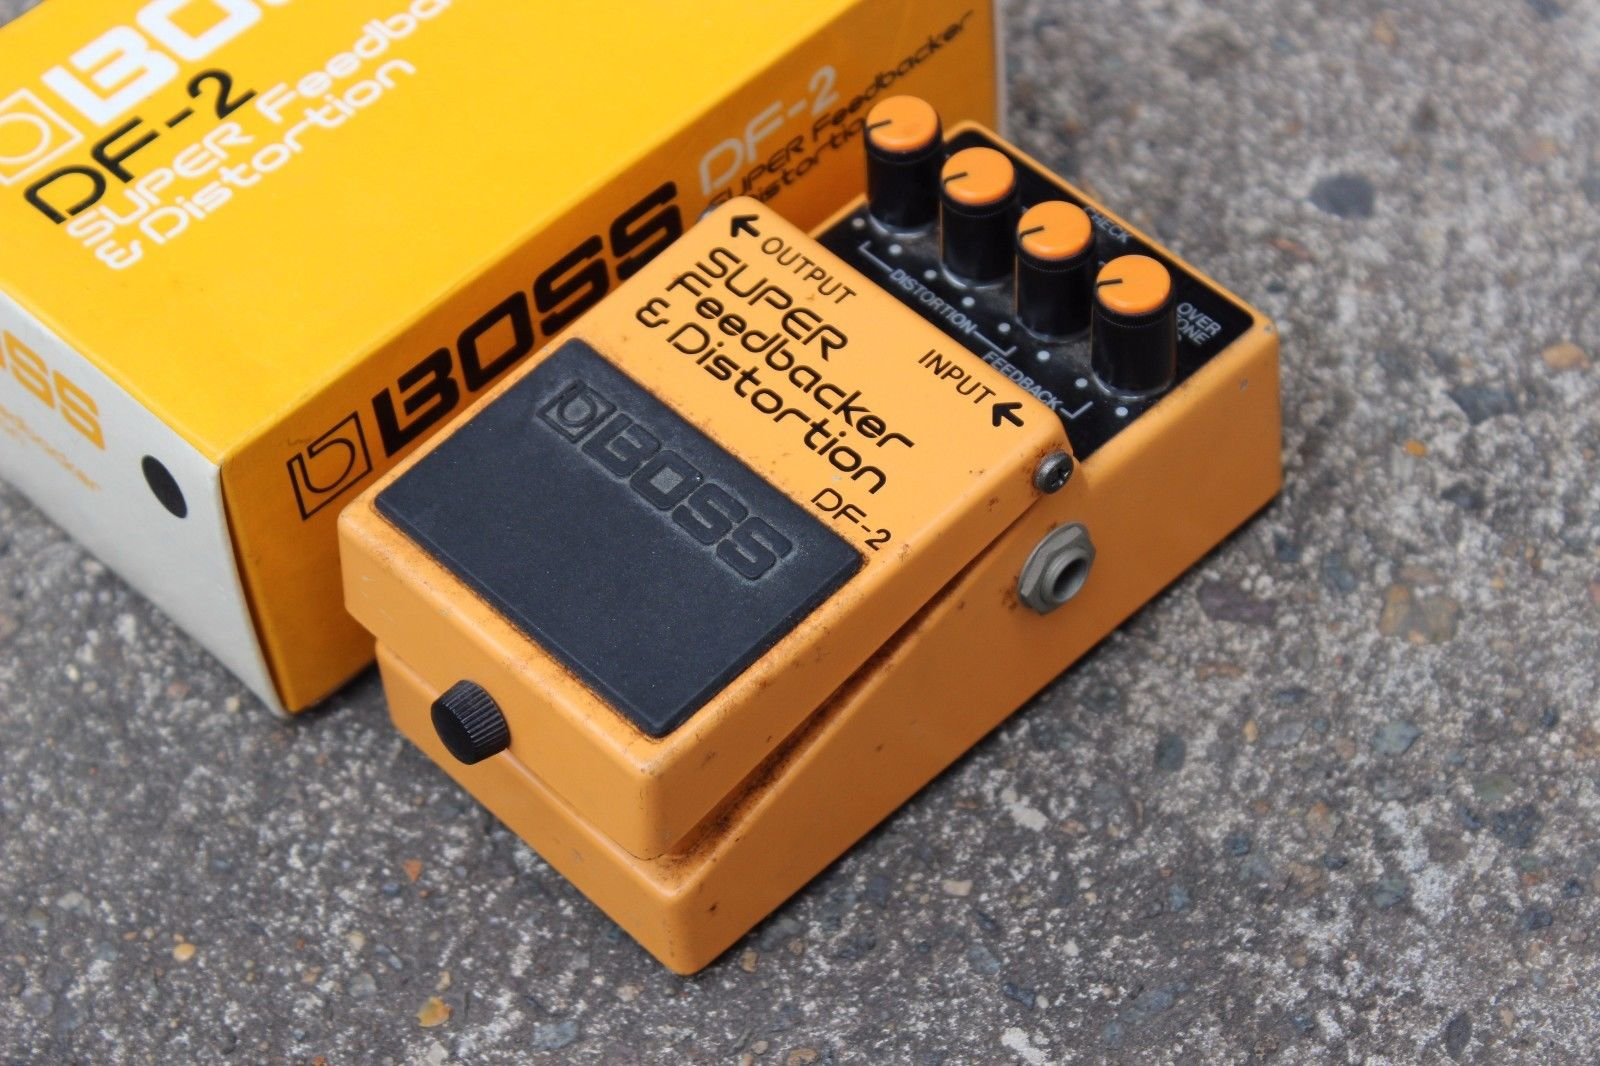 1985 Boss DF-2 Super Feedbacker Distortion MIJ Japan Vintage Effects Pedal w/Box